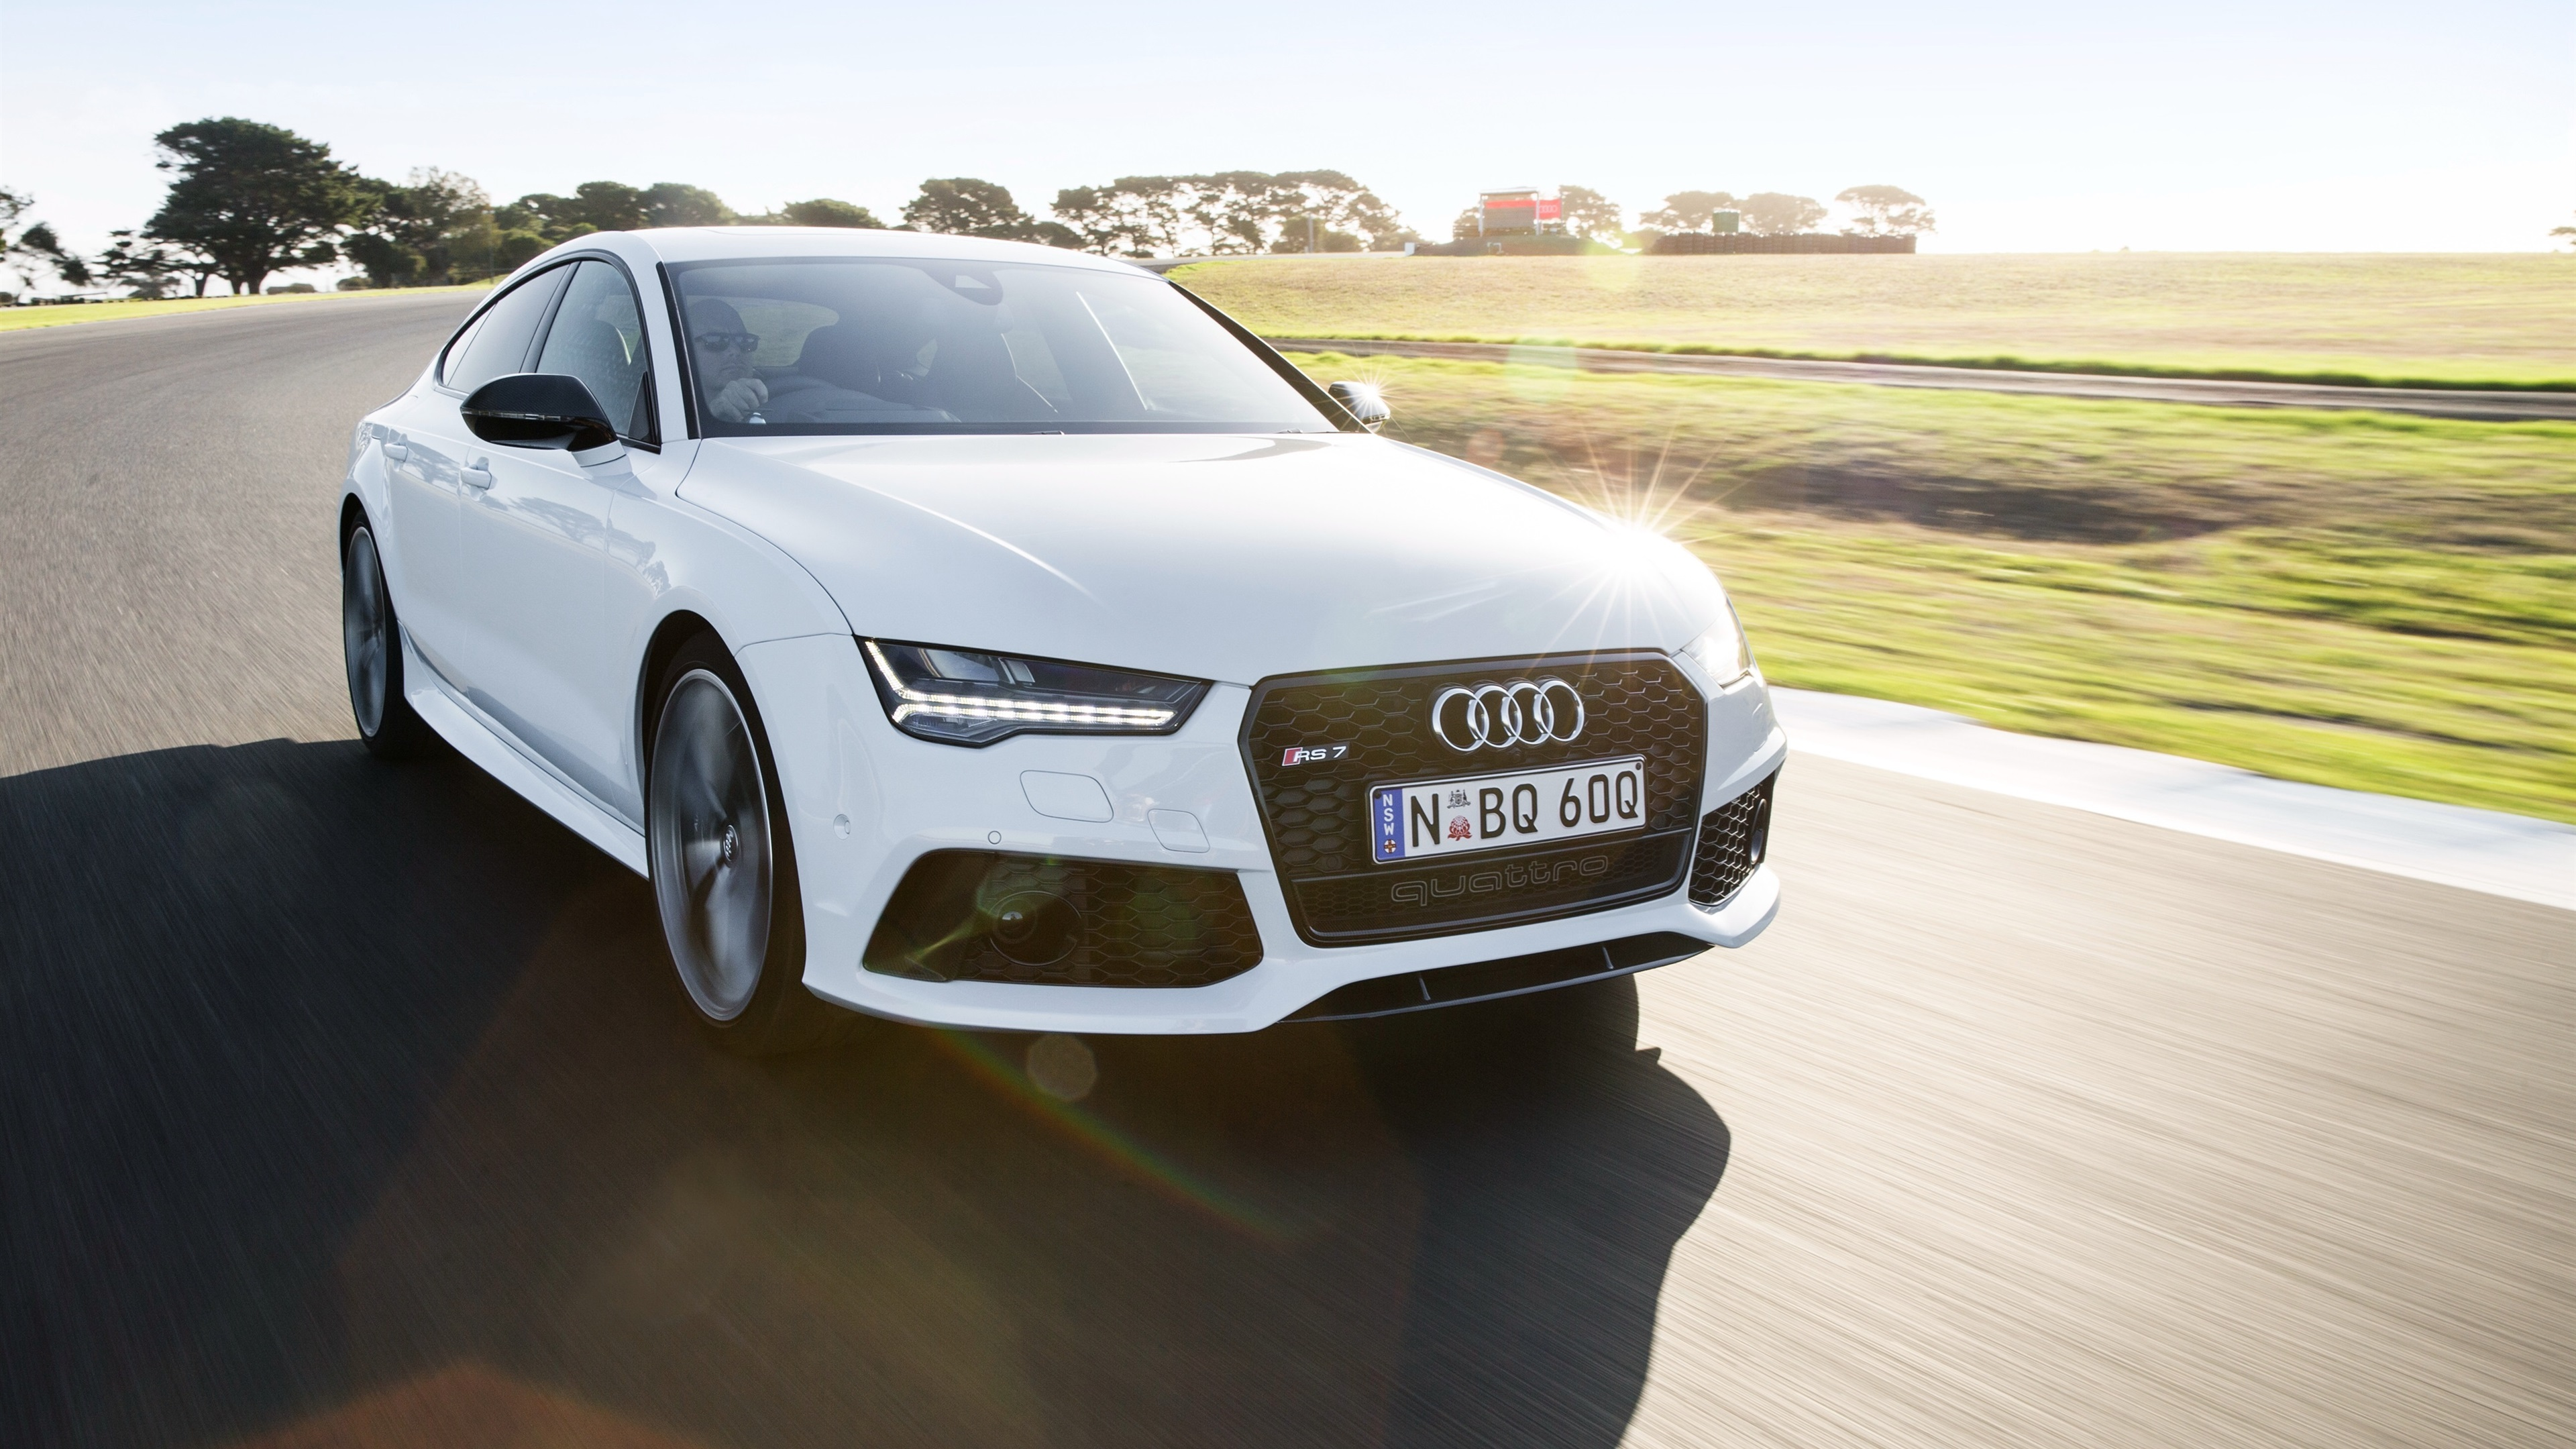 Wallpaper Audi RS7 White Car Speed 3840x2160 UHD 4K Picture Image